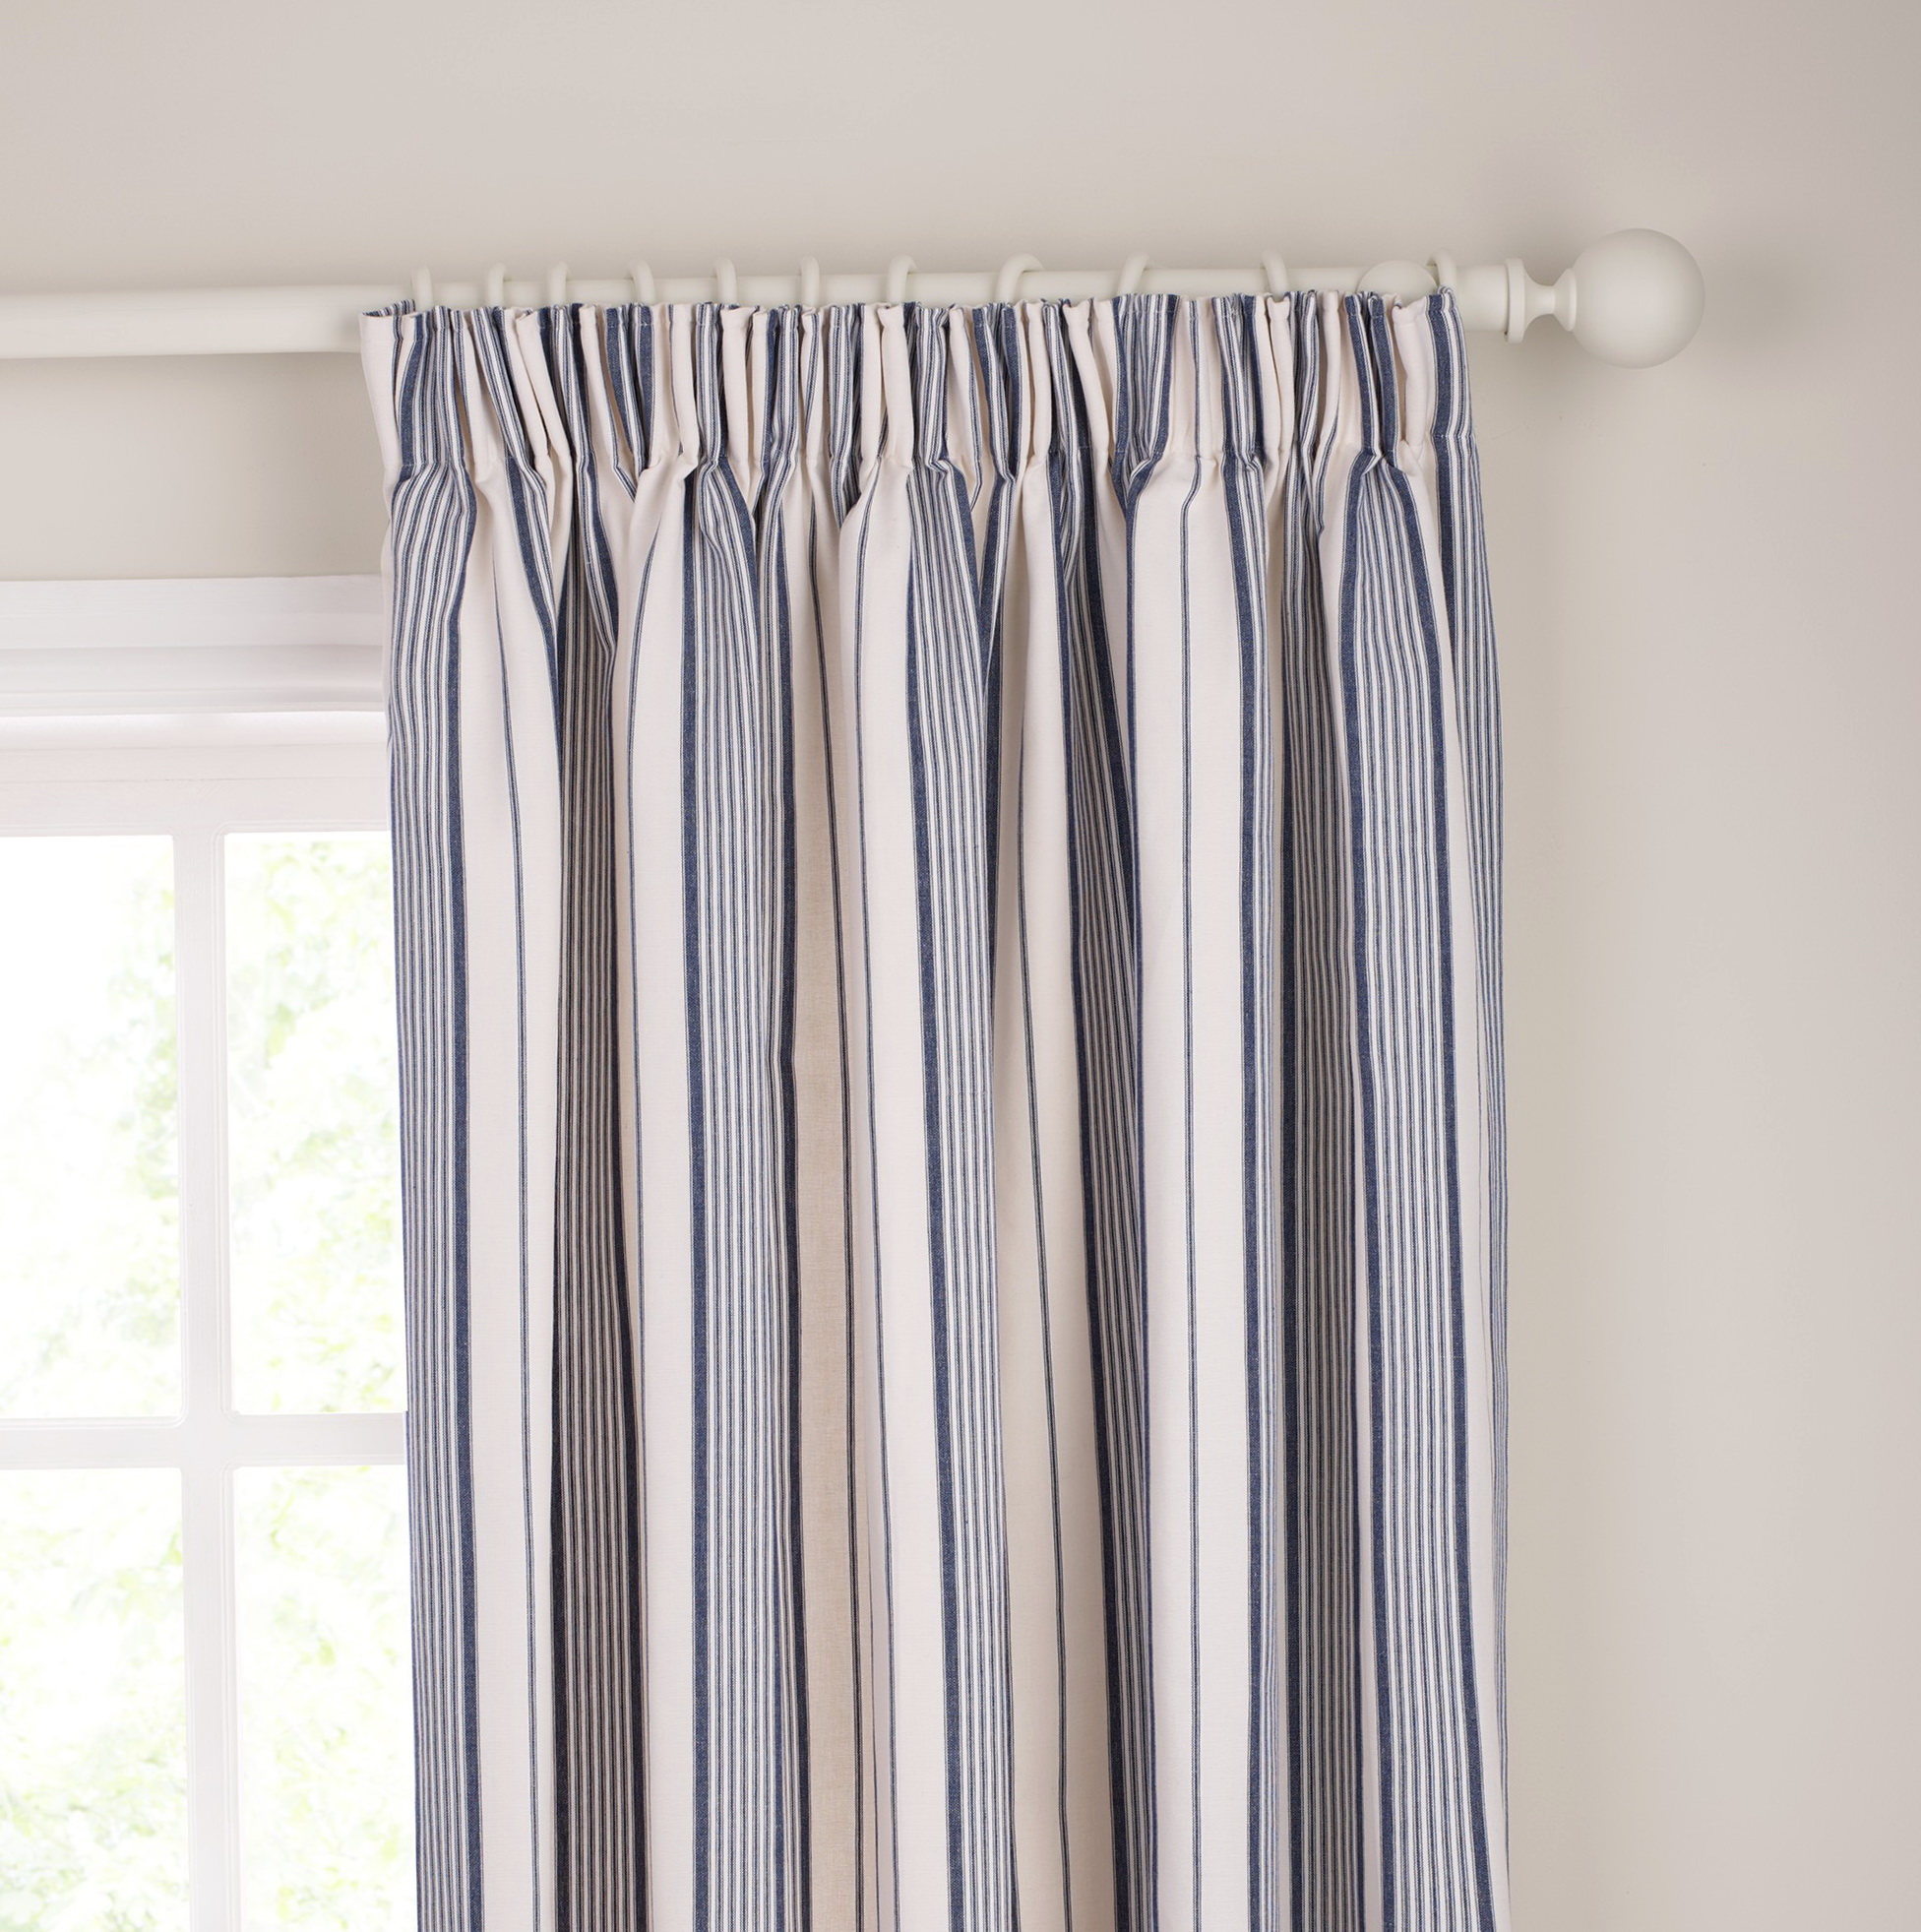 of eyelet pair gray kitchen white co machine fully striped curtain amazon width washable cotton drop a stripe dp design and cms lined uk curtains